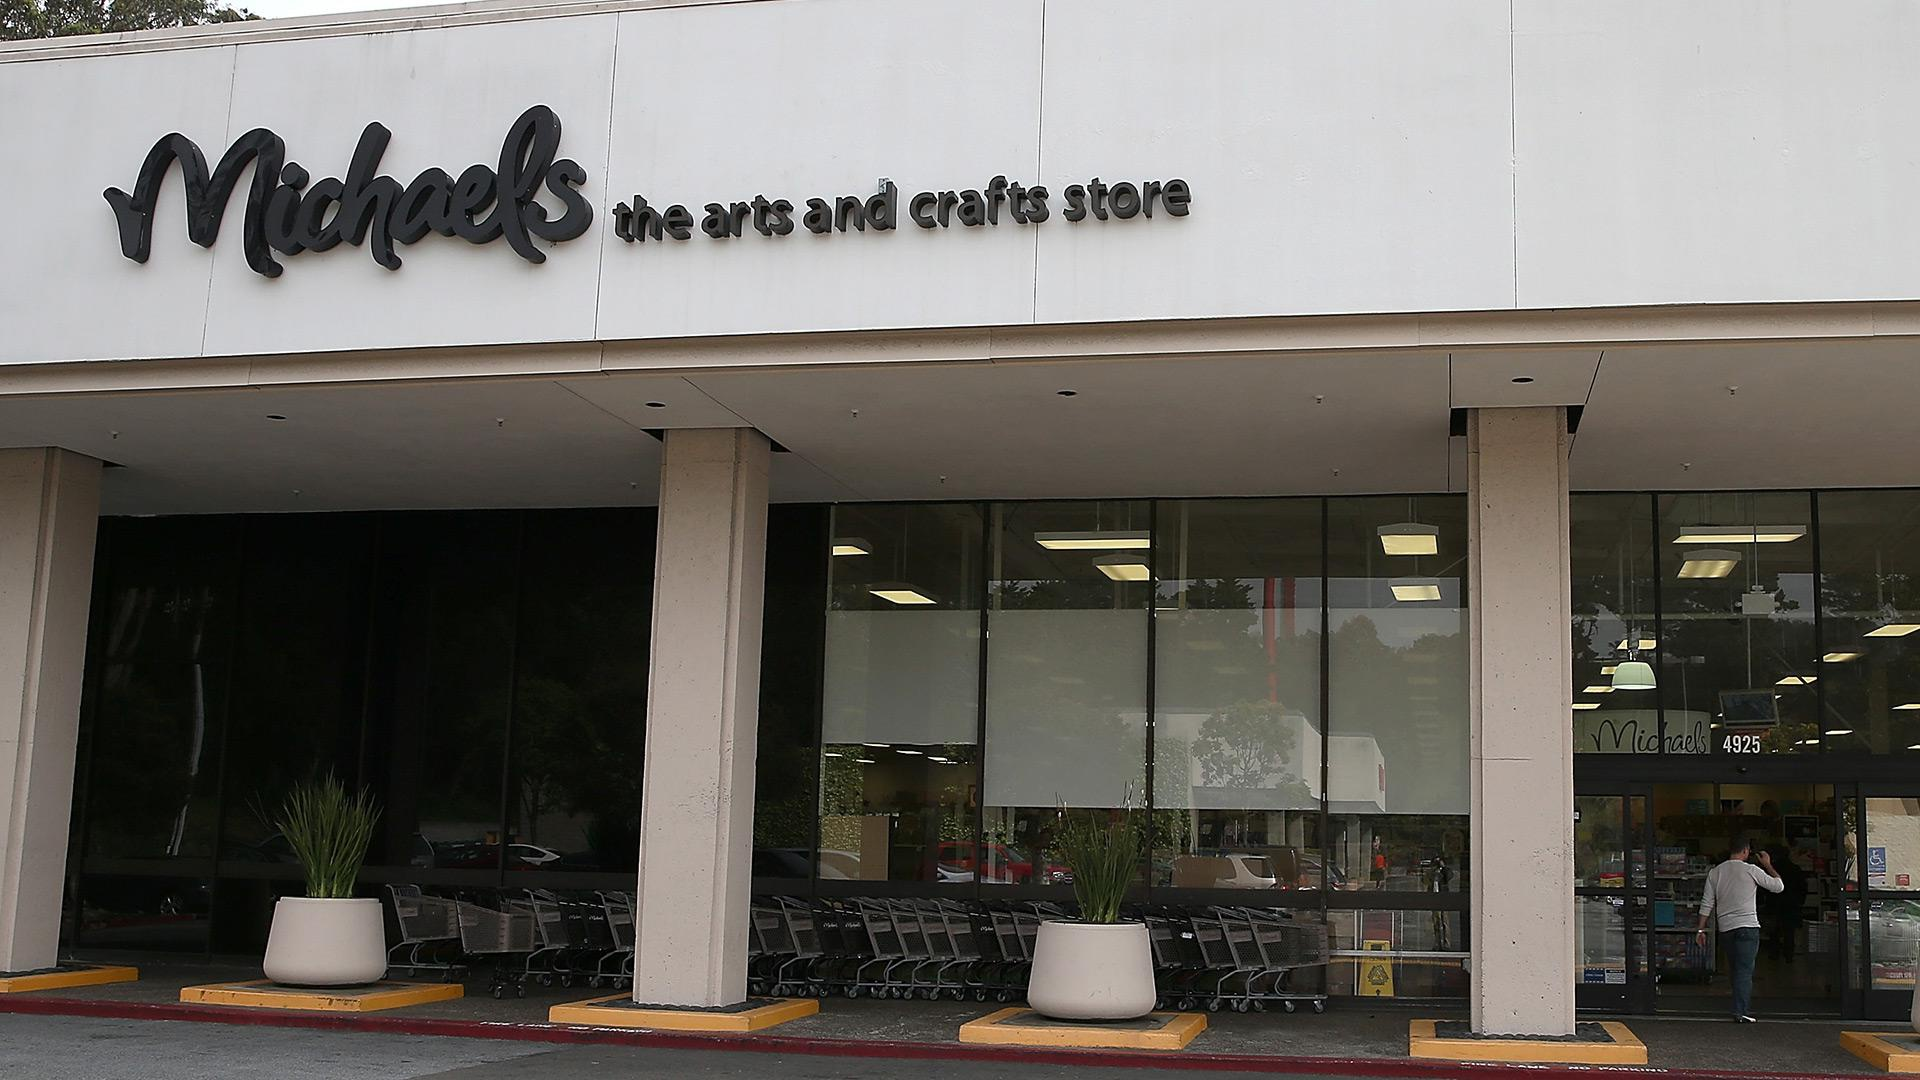 Michaels craft store allegedly tells breastfeeding mom to for Michaels craft store denver